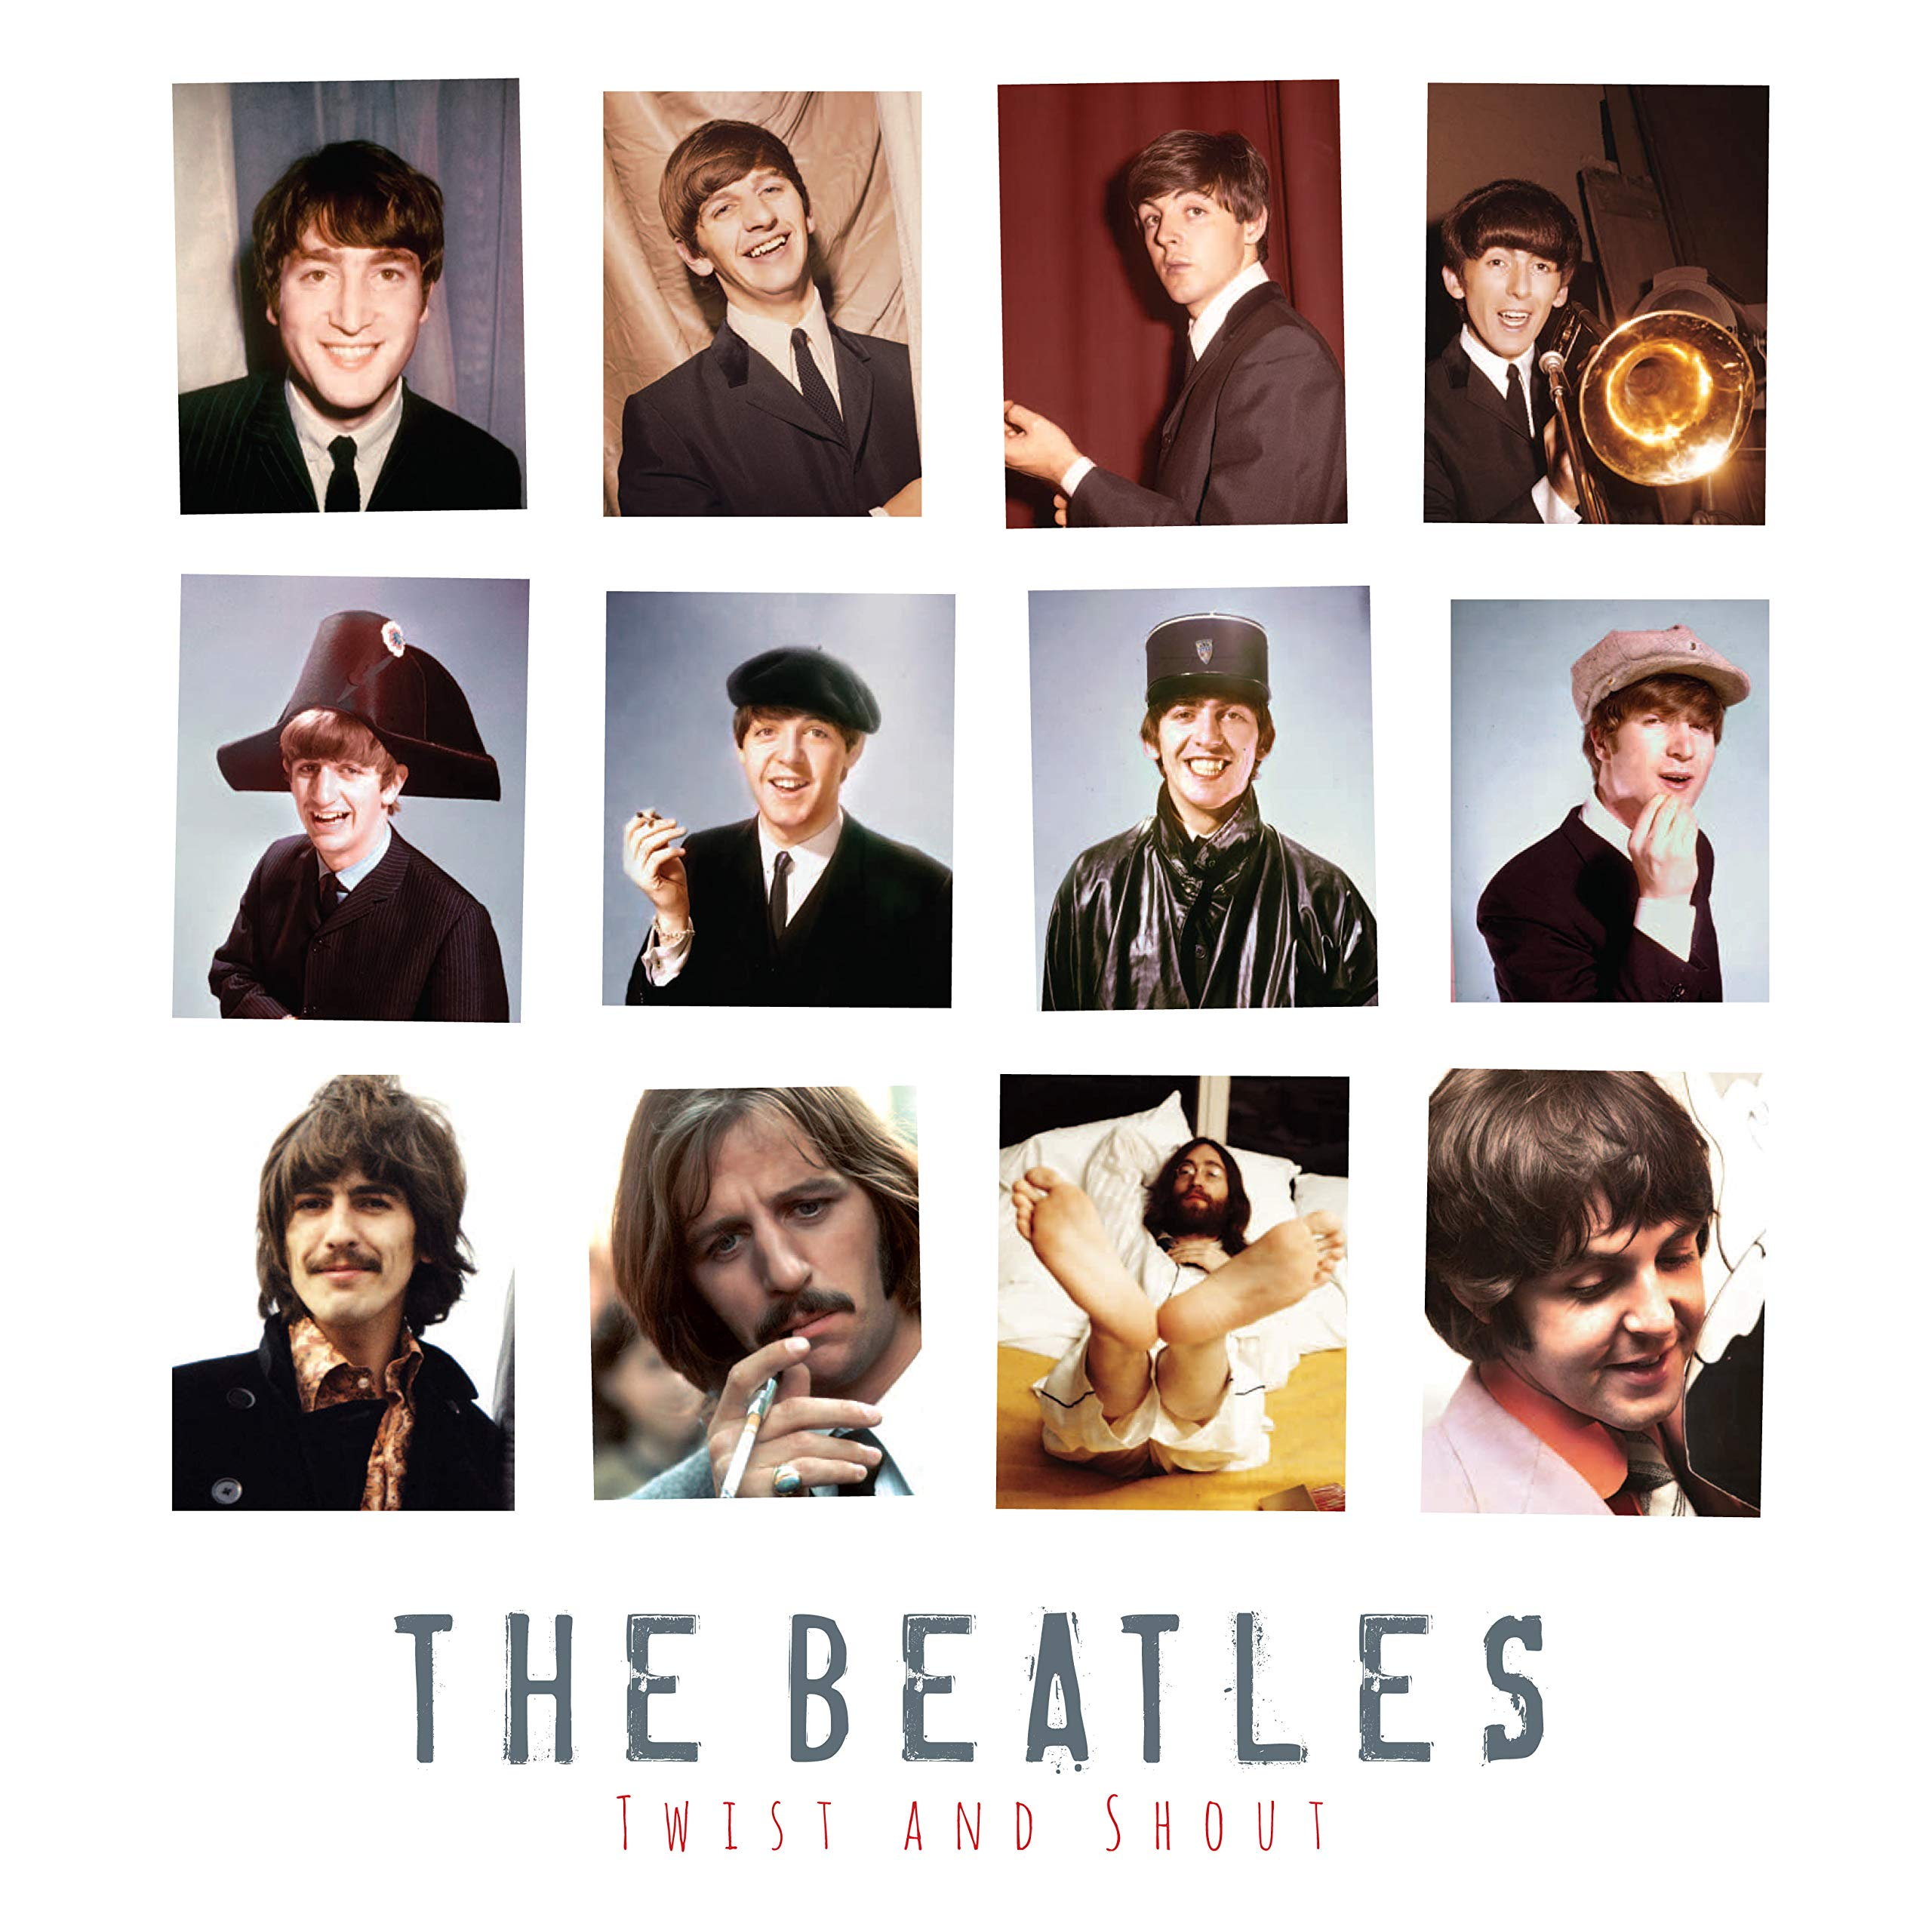 TWIST BEATLES DOWNLOAD AND THE GRATUITO SHOUT MUSICA